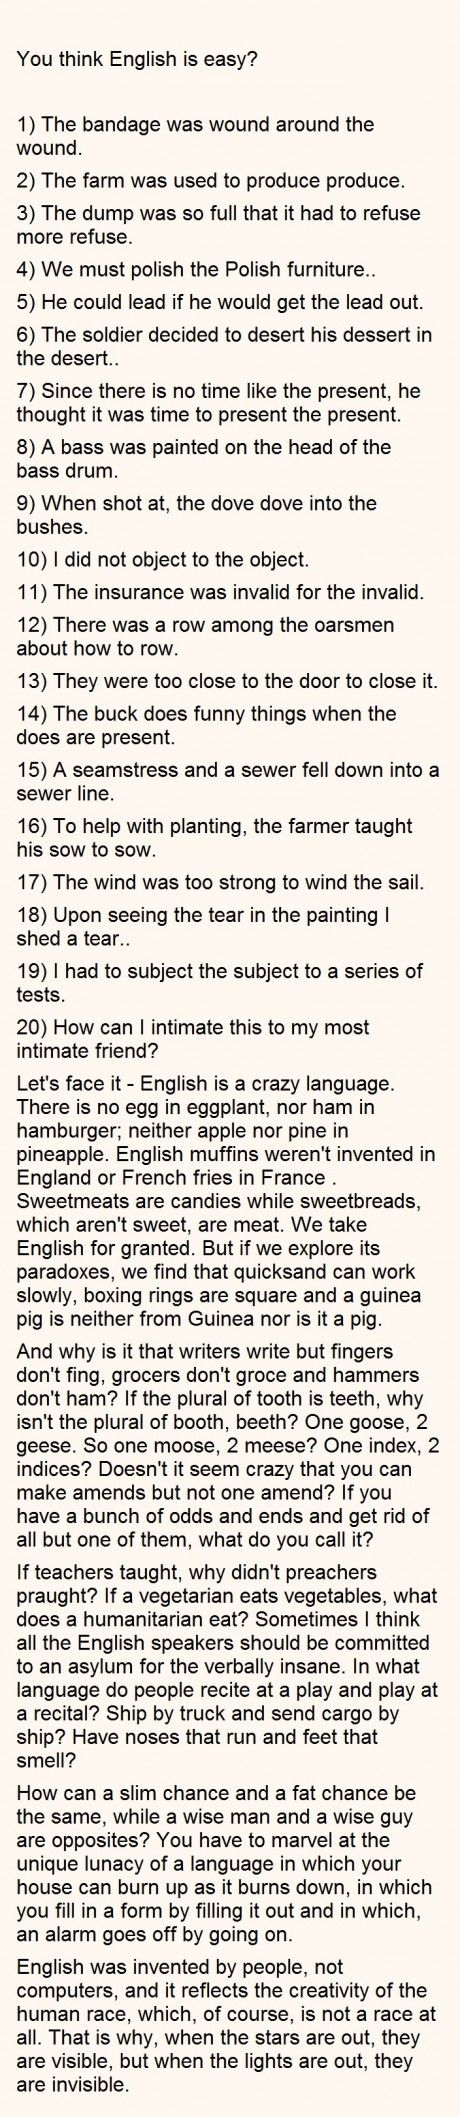 Think English is easy??  You may have to scroll down to see this article...